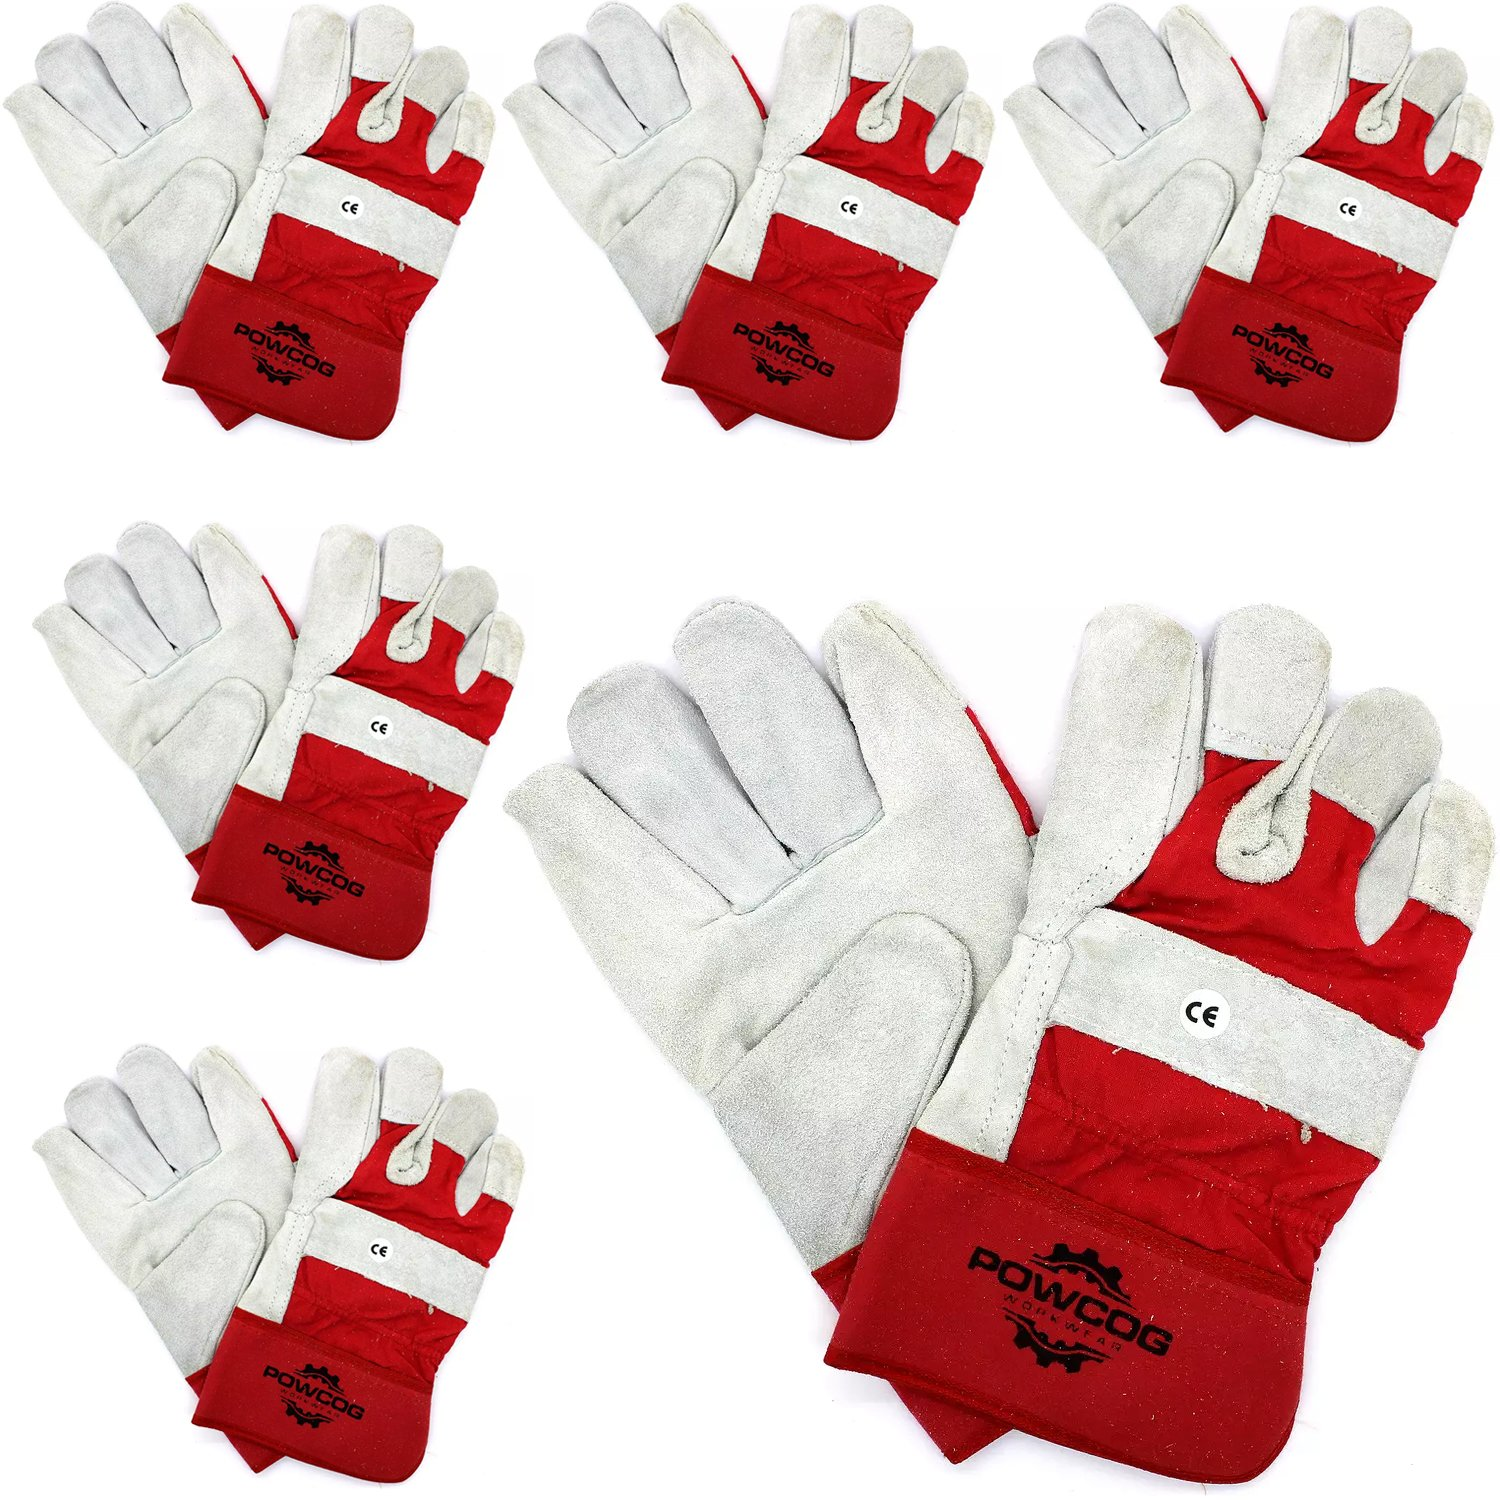 6 Pairs of Leather Rigger Safety Work Gloves | Heavy Duty | Red/Grey by POWCOG